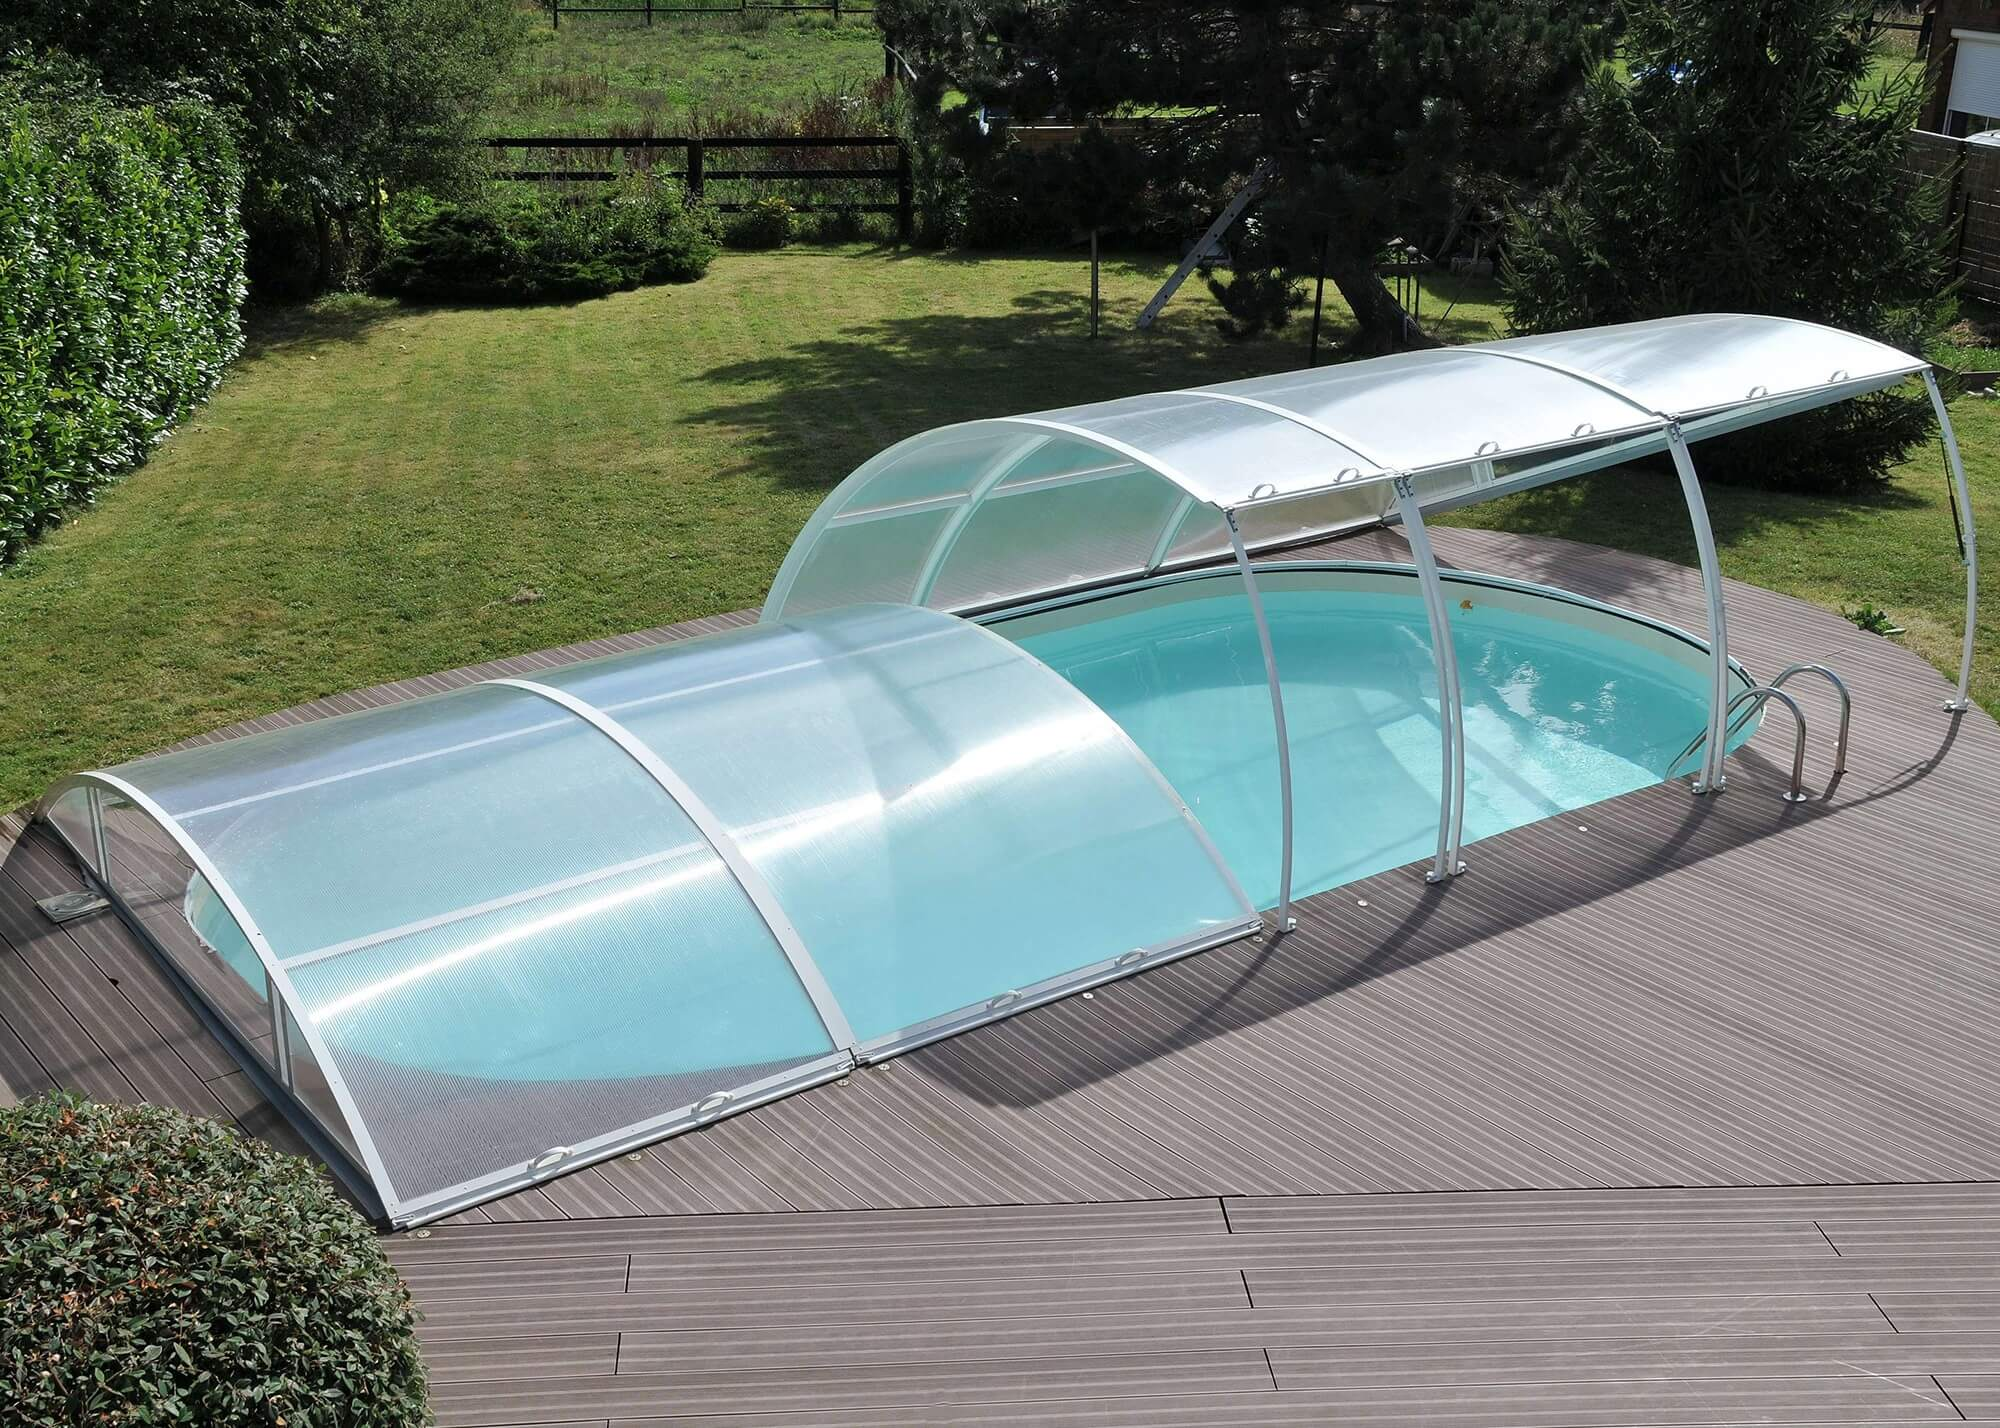 Abri amovible pour piscine piscines waterair for Abri piscine occasion